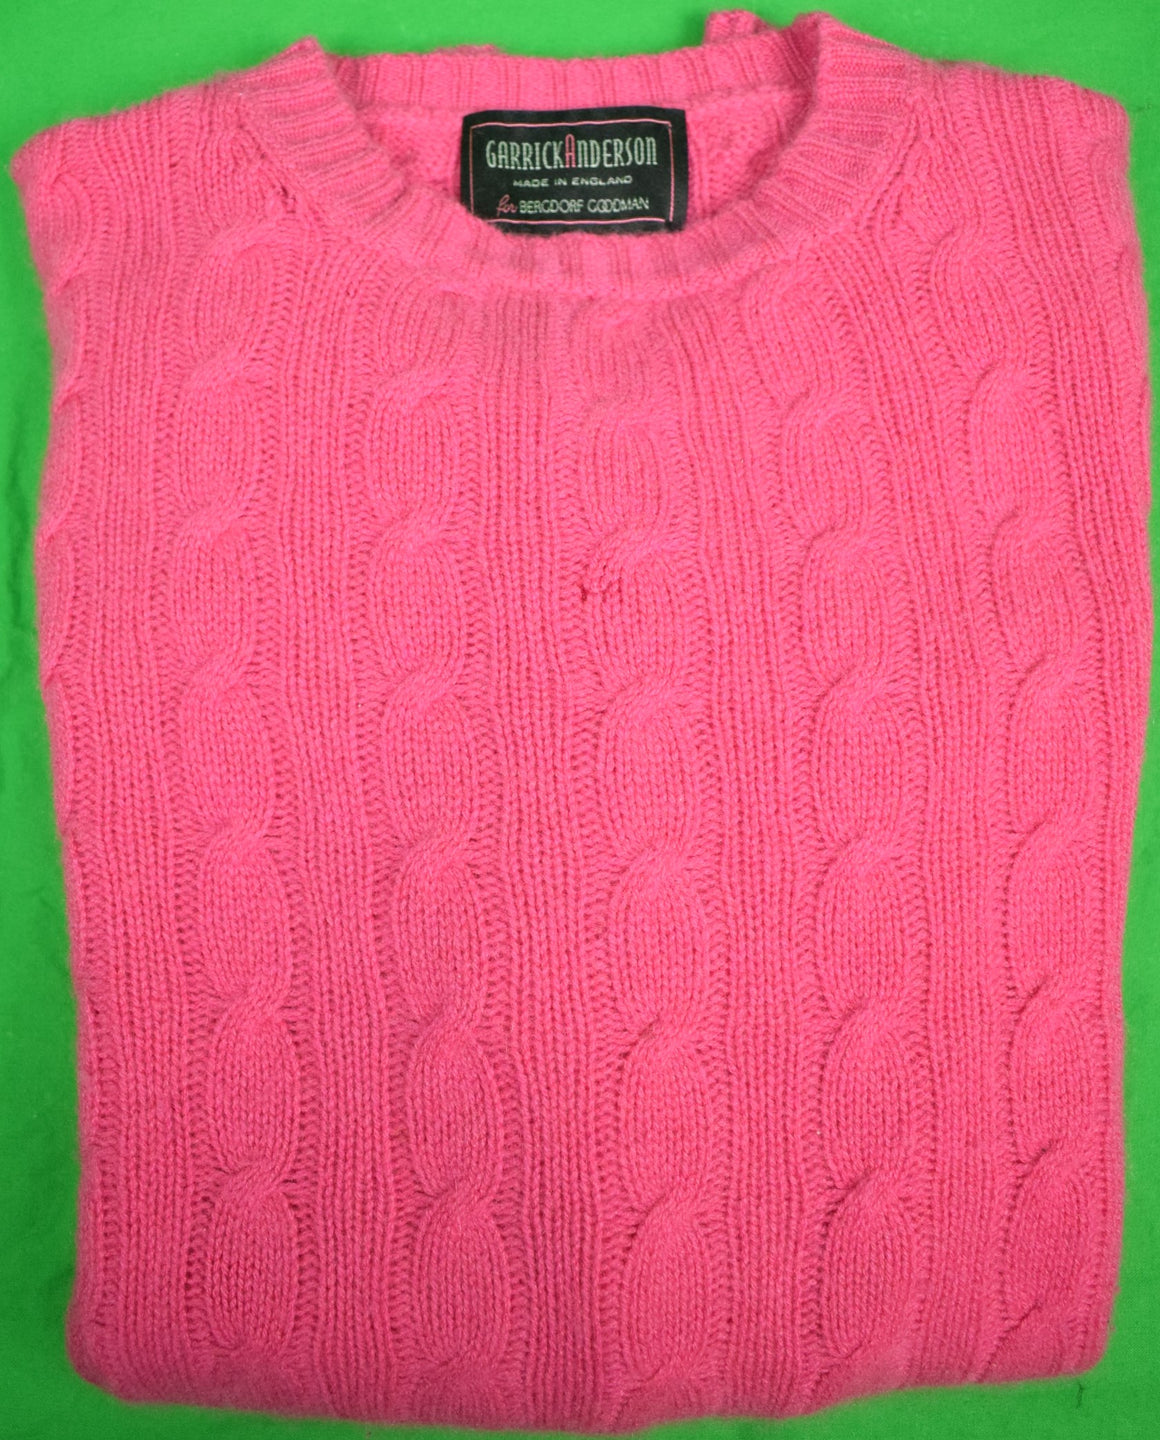 Garrick Anderson Raspberry Scottish Cashmere Cable Crew Neck Sweater Sz: XL